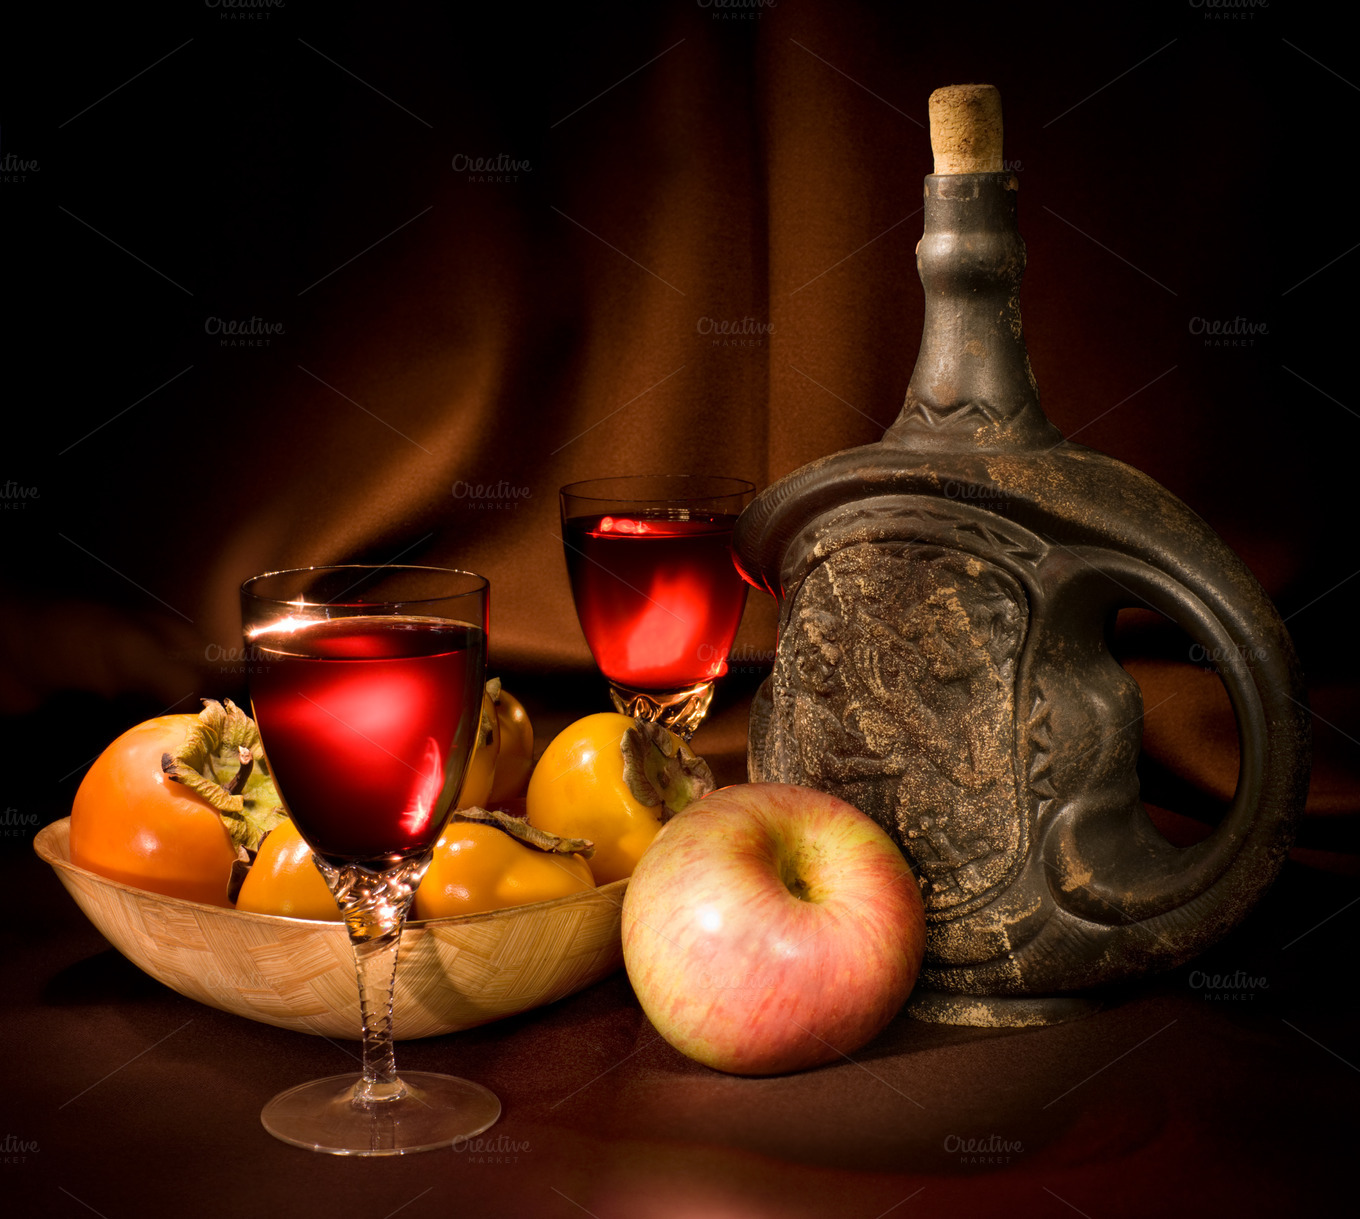 vintage-wine-and-fruits-picture